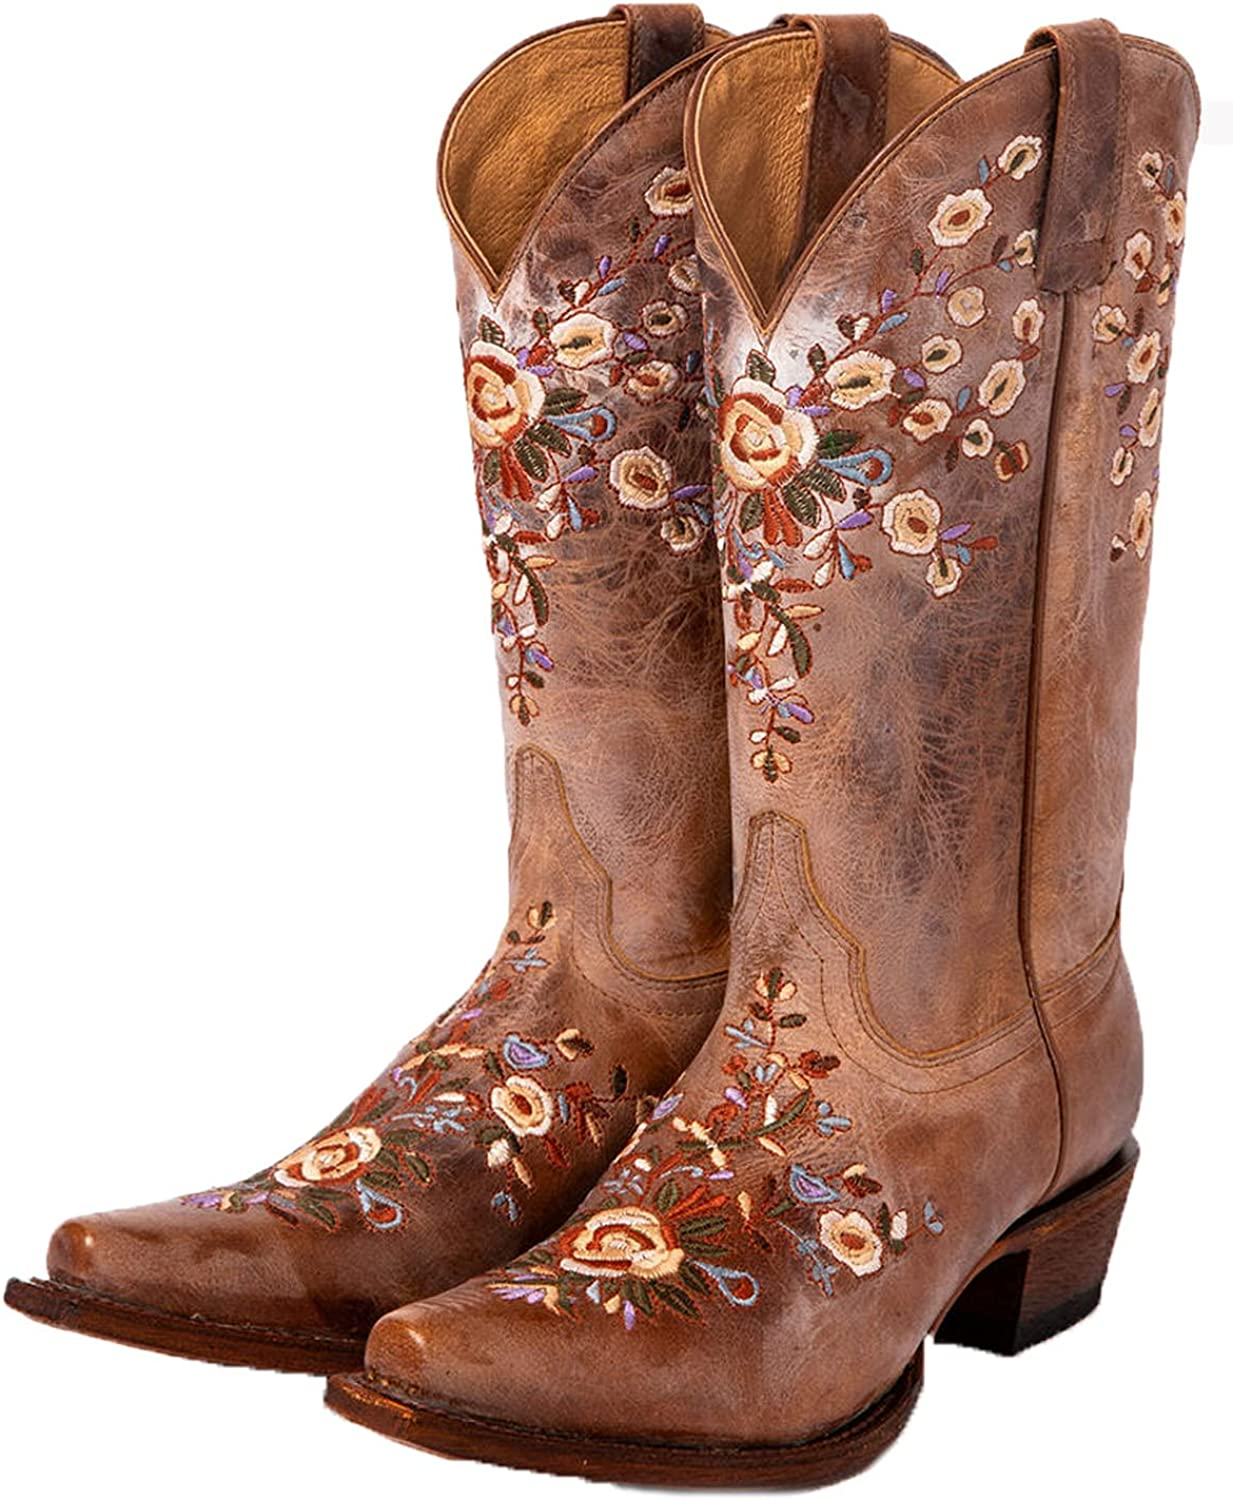 MeiLuSi Vintage Floral Western Cowboy Boots for Women Chunky Mid Heel Knee High Cowgirls Riding Knight Boots